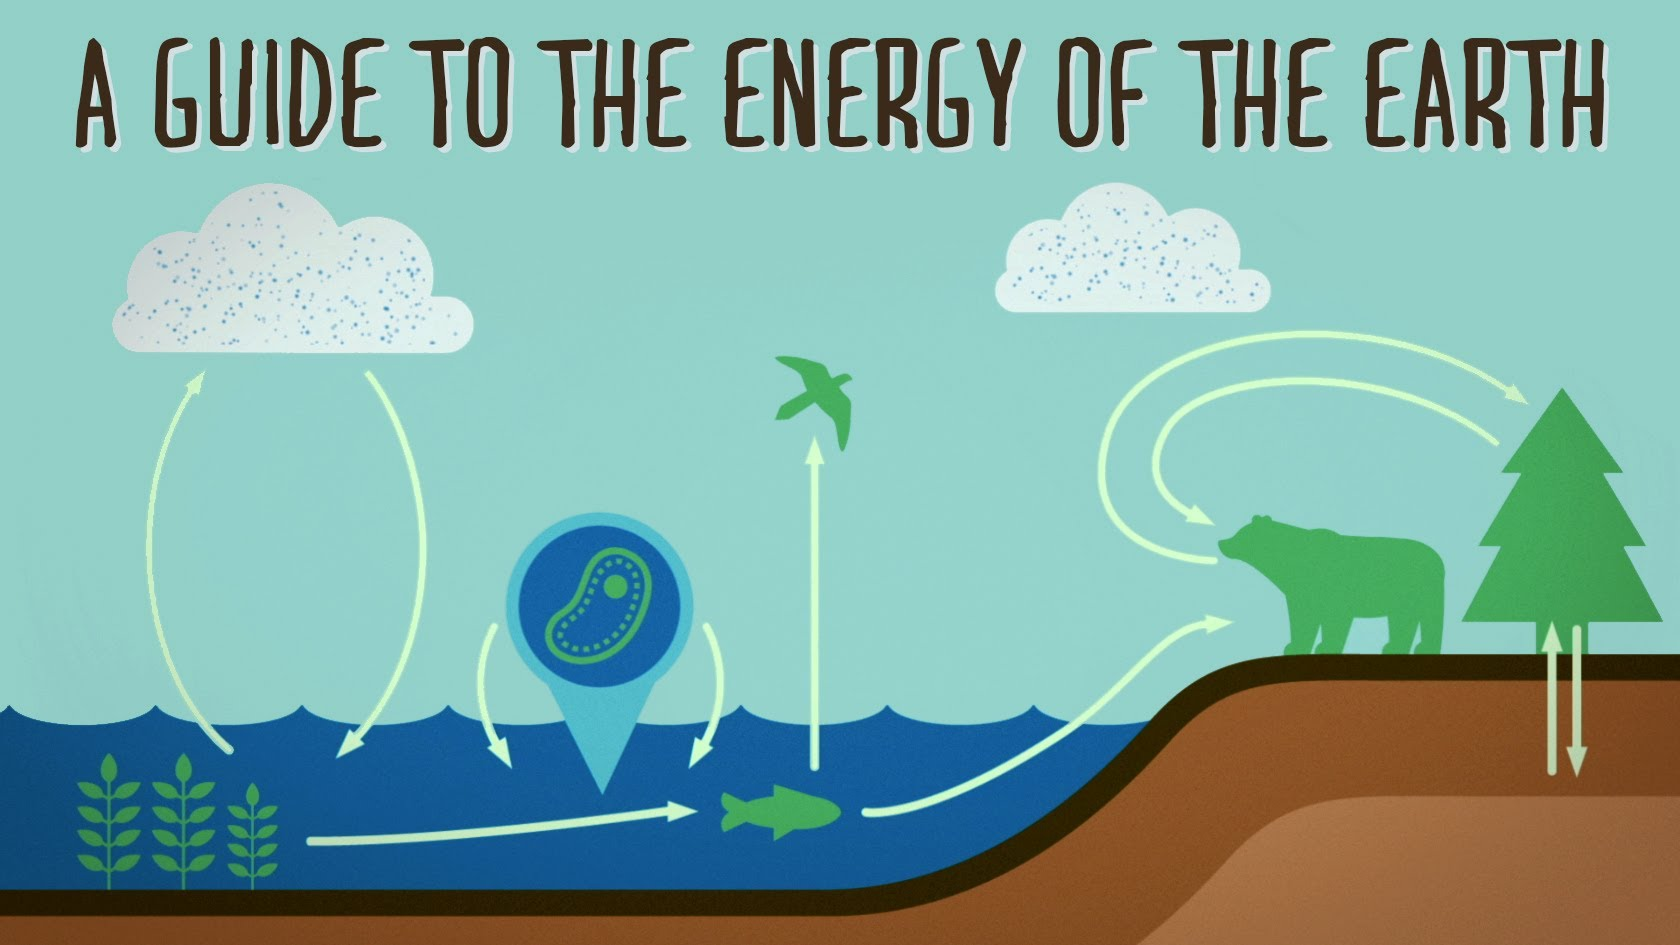 A guide to the energy of the Earth